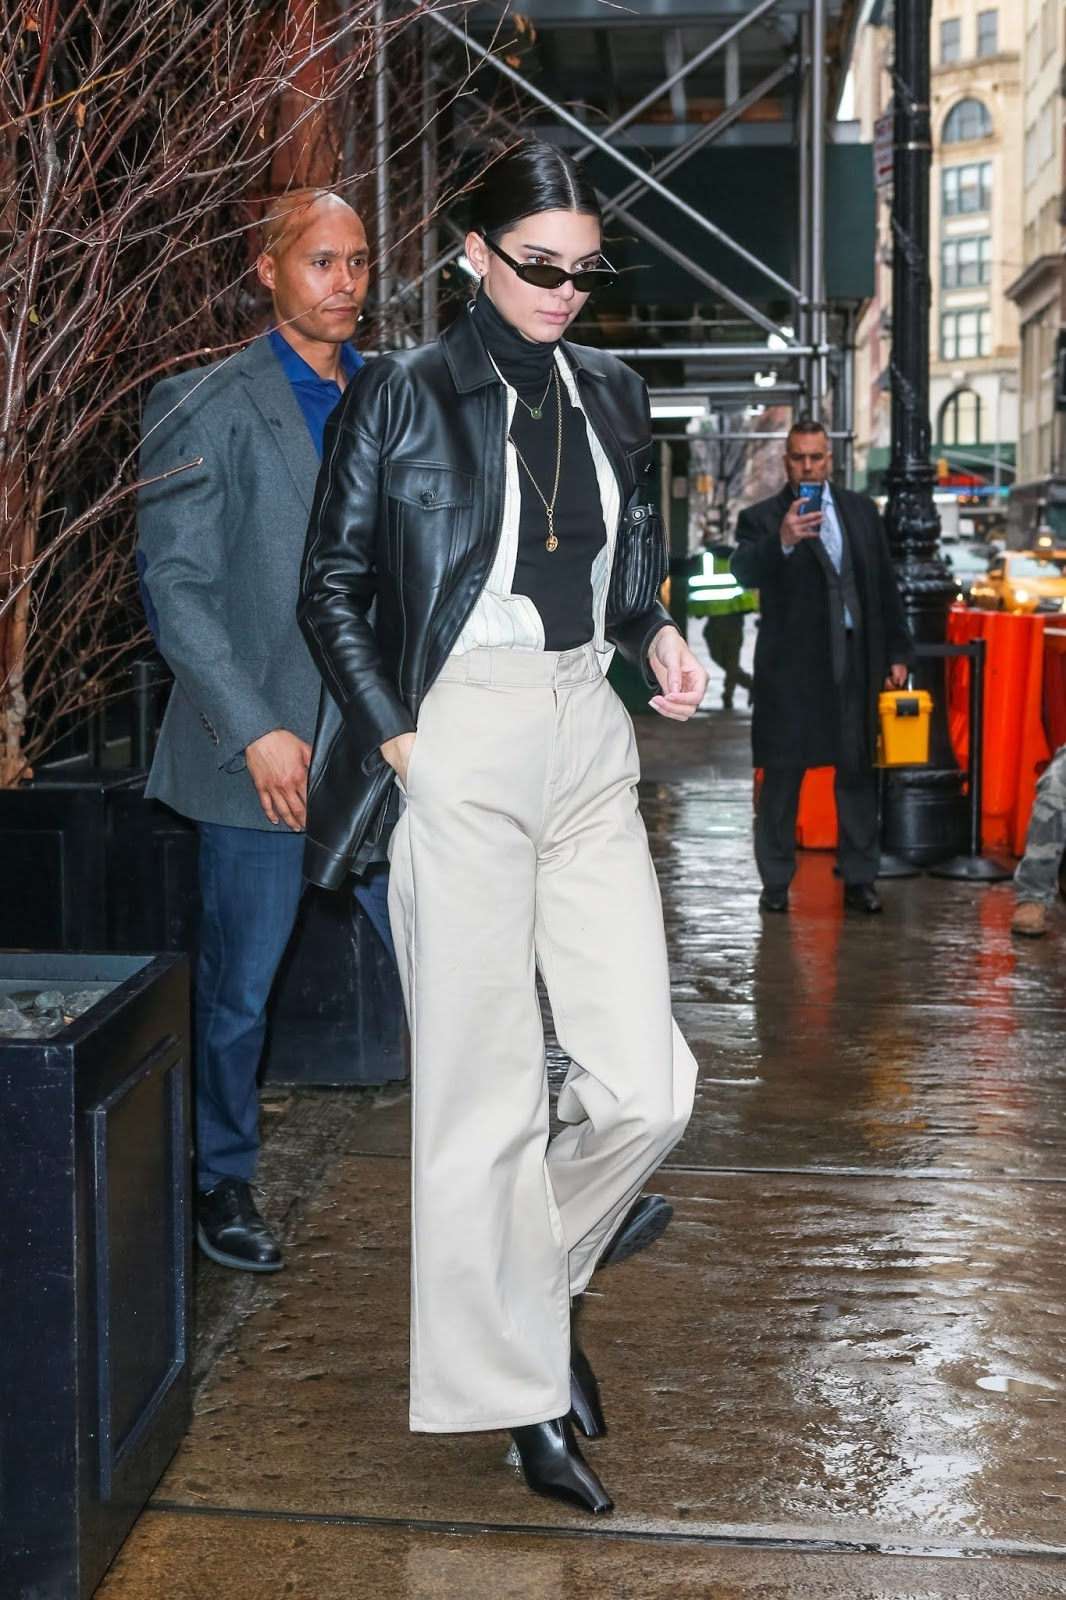 Kendall Jenner - Out and about in NYC February 8, 2019